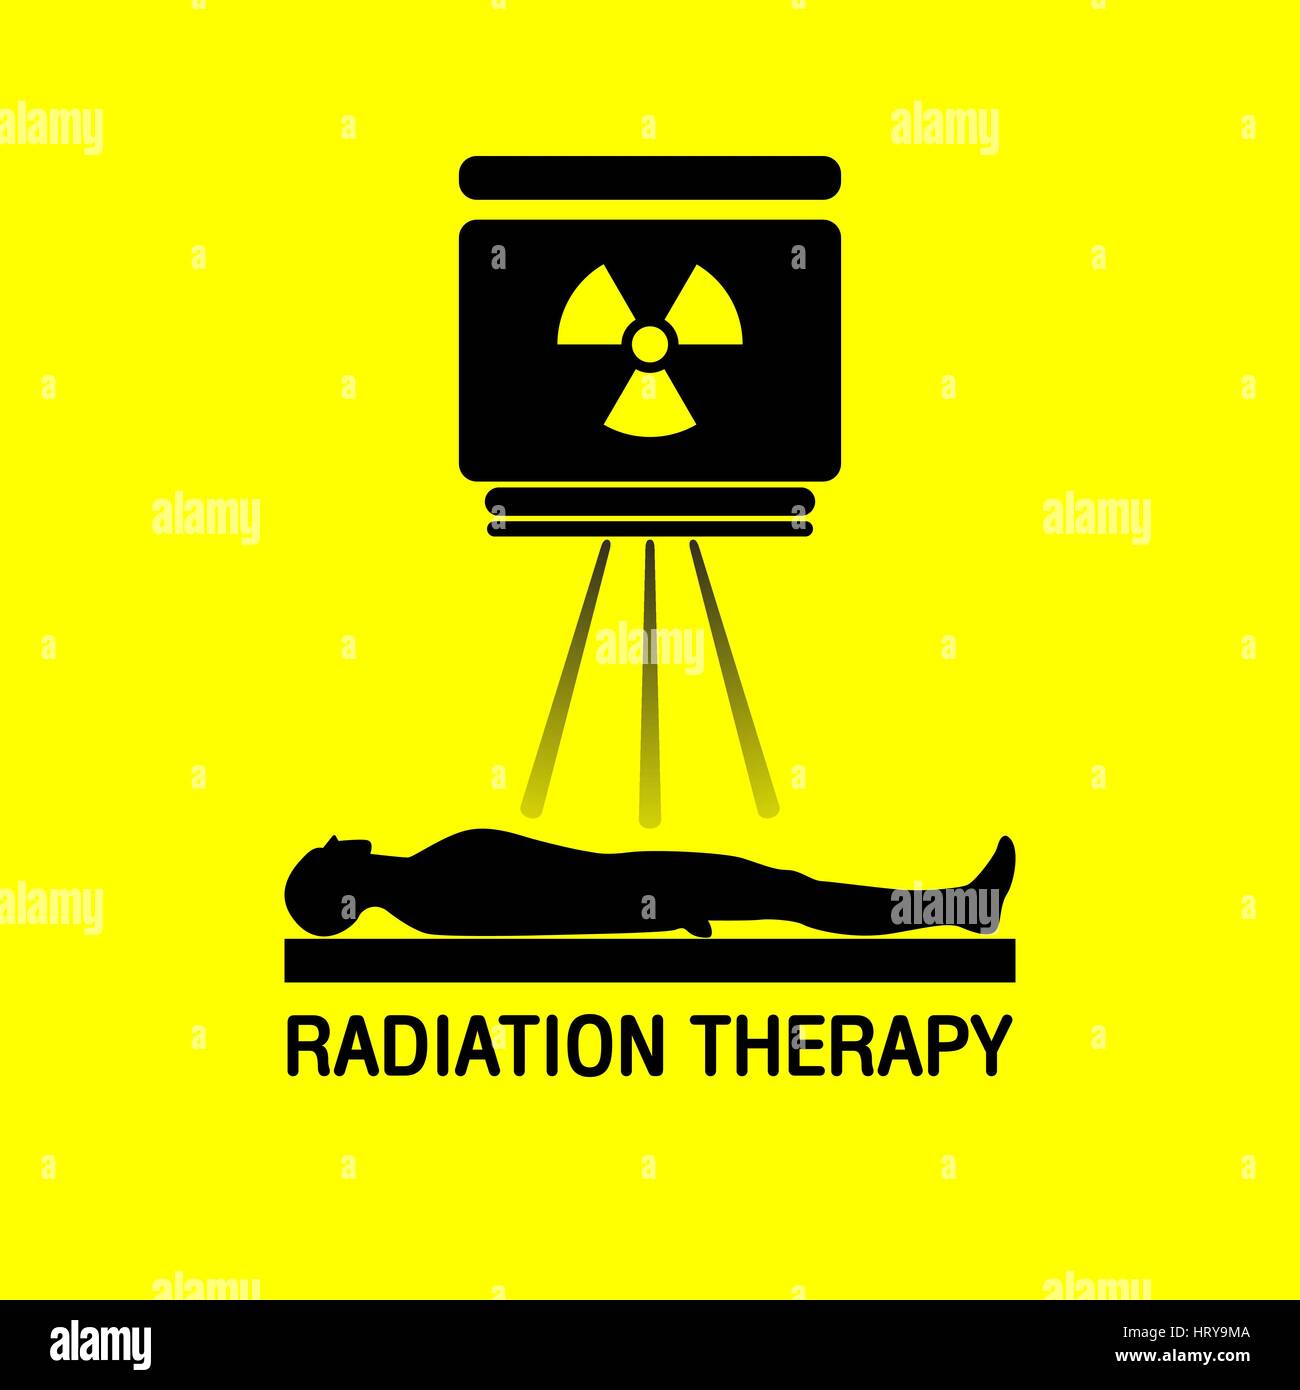 Radiation therapy Medical logo vector icon design - Stock Image